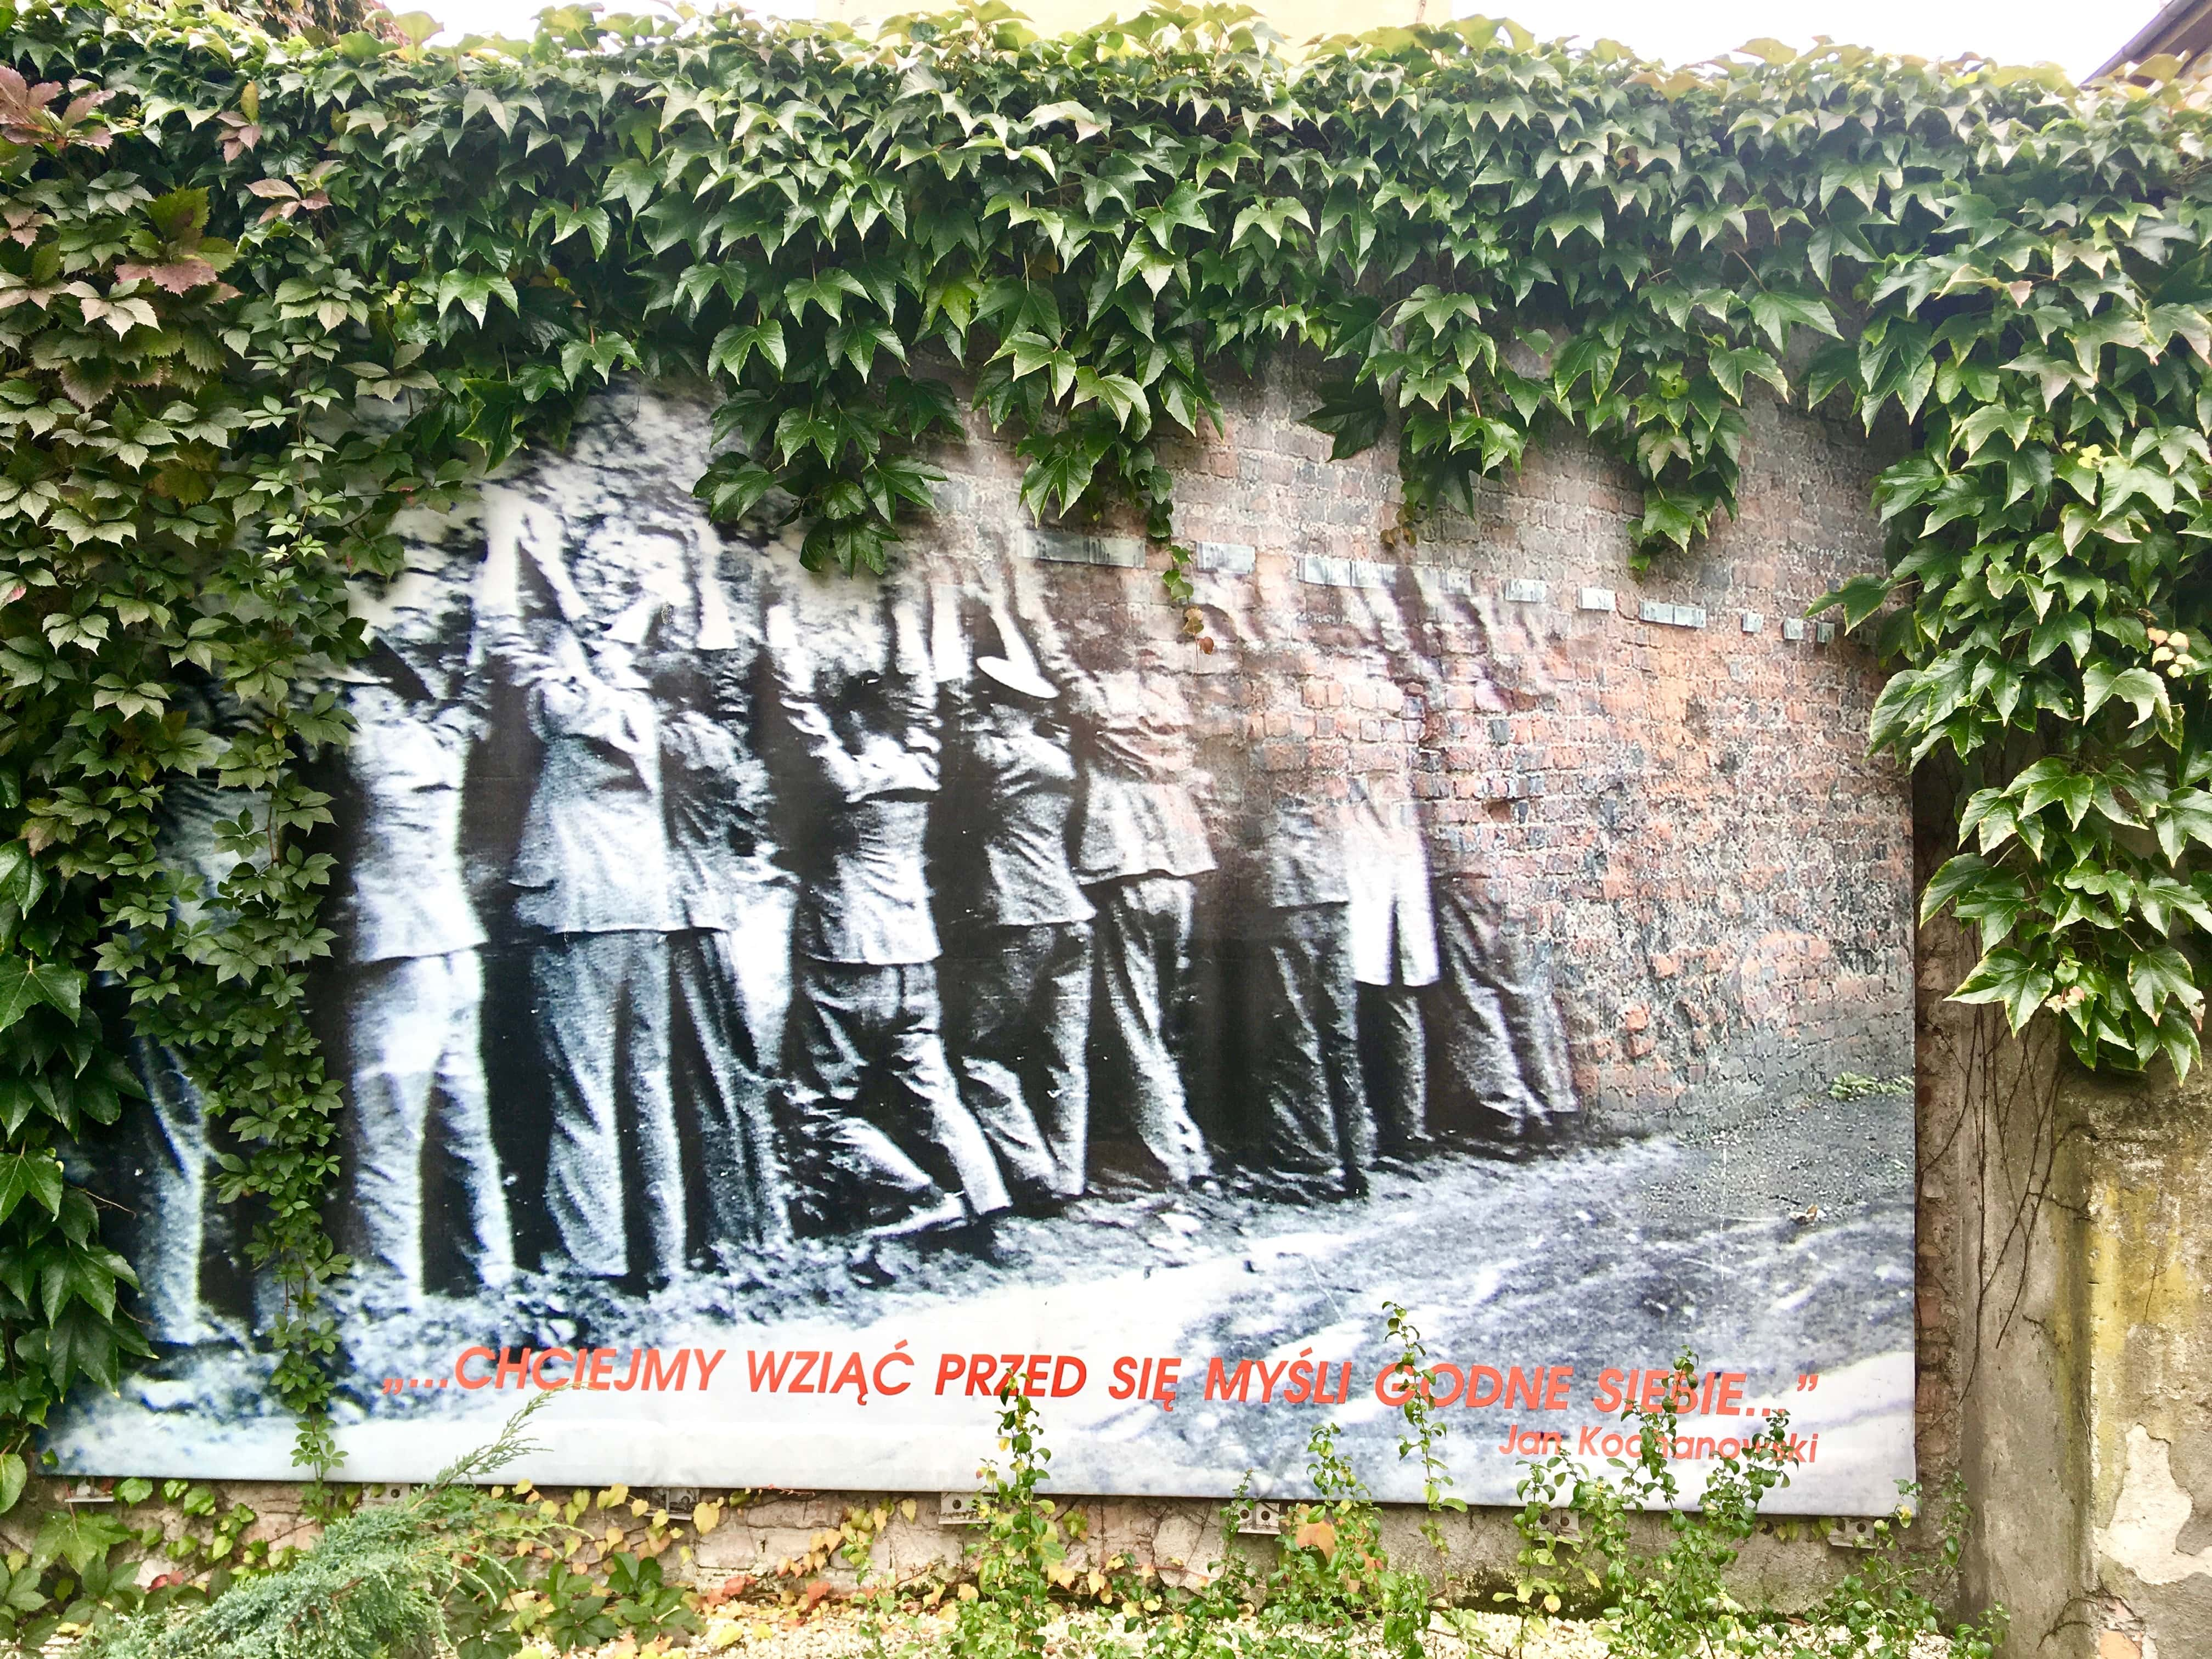 The photograph showing the surrendered postal workers against the wall